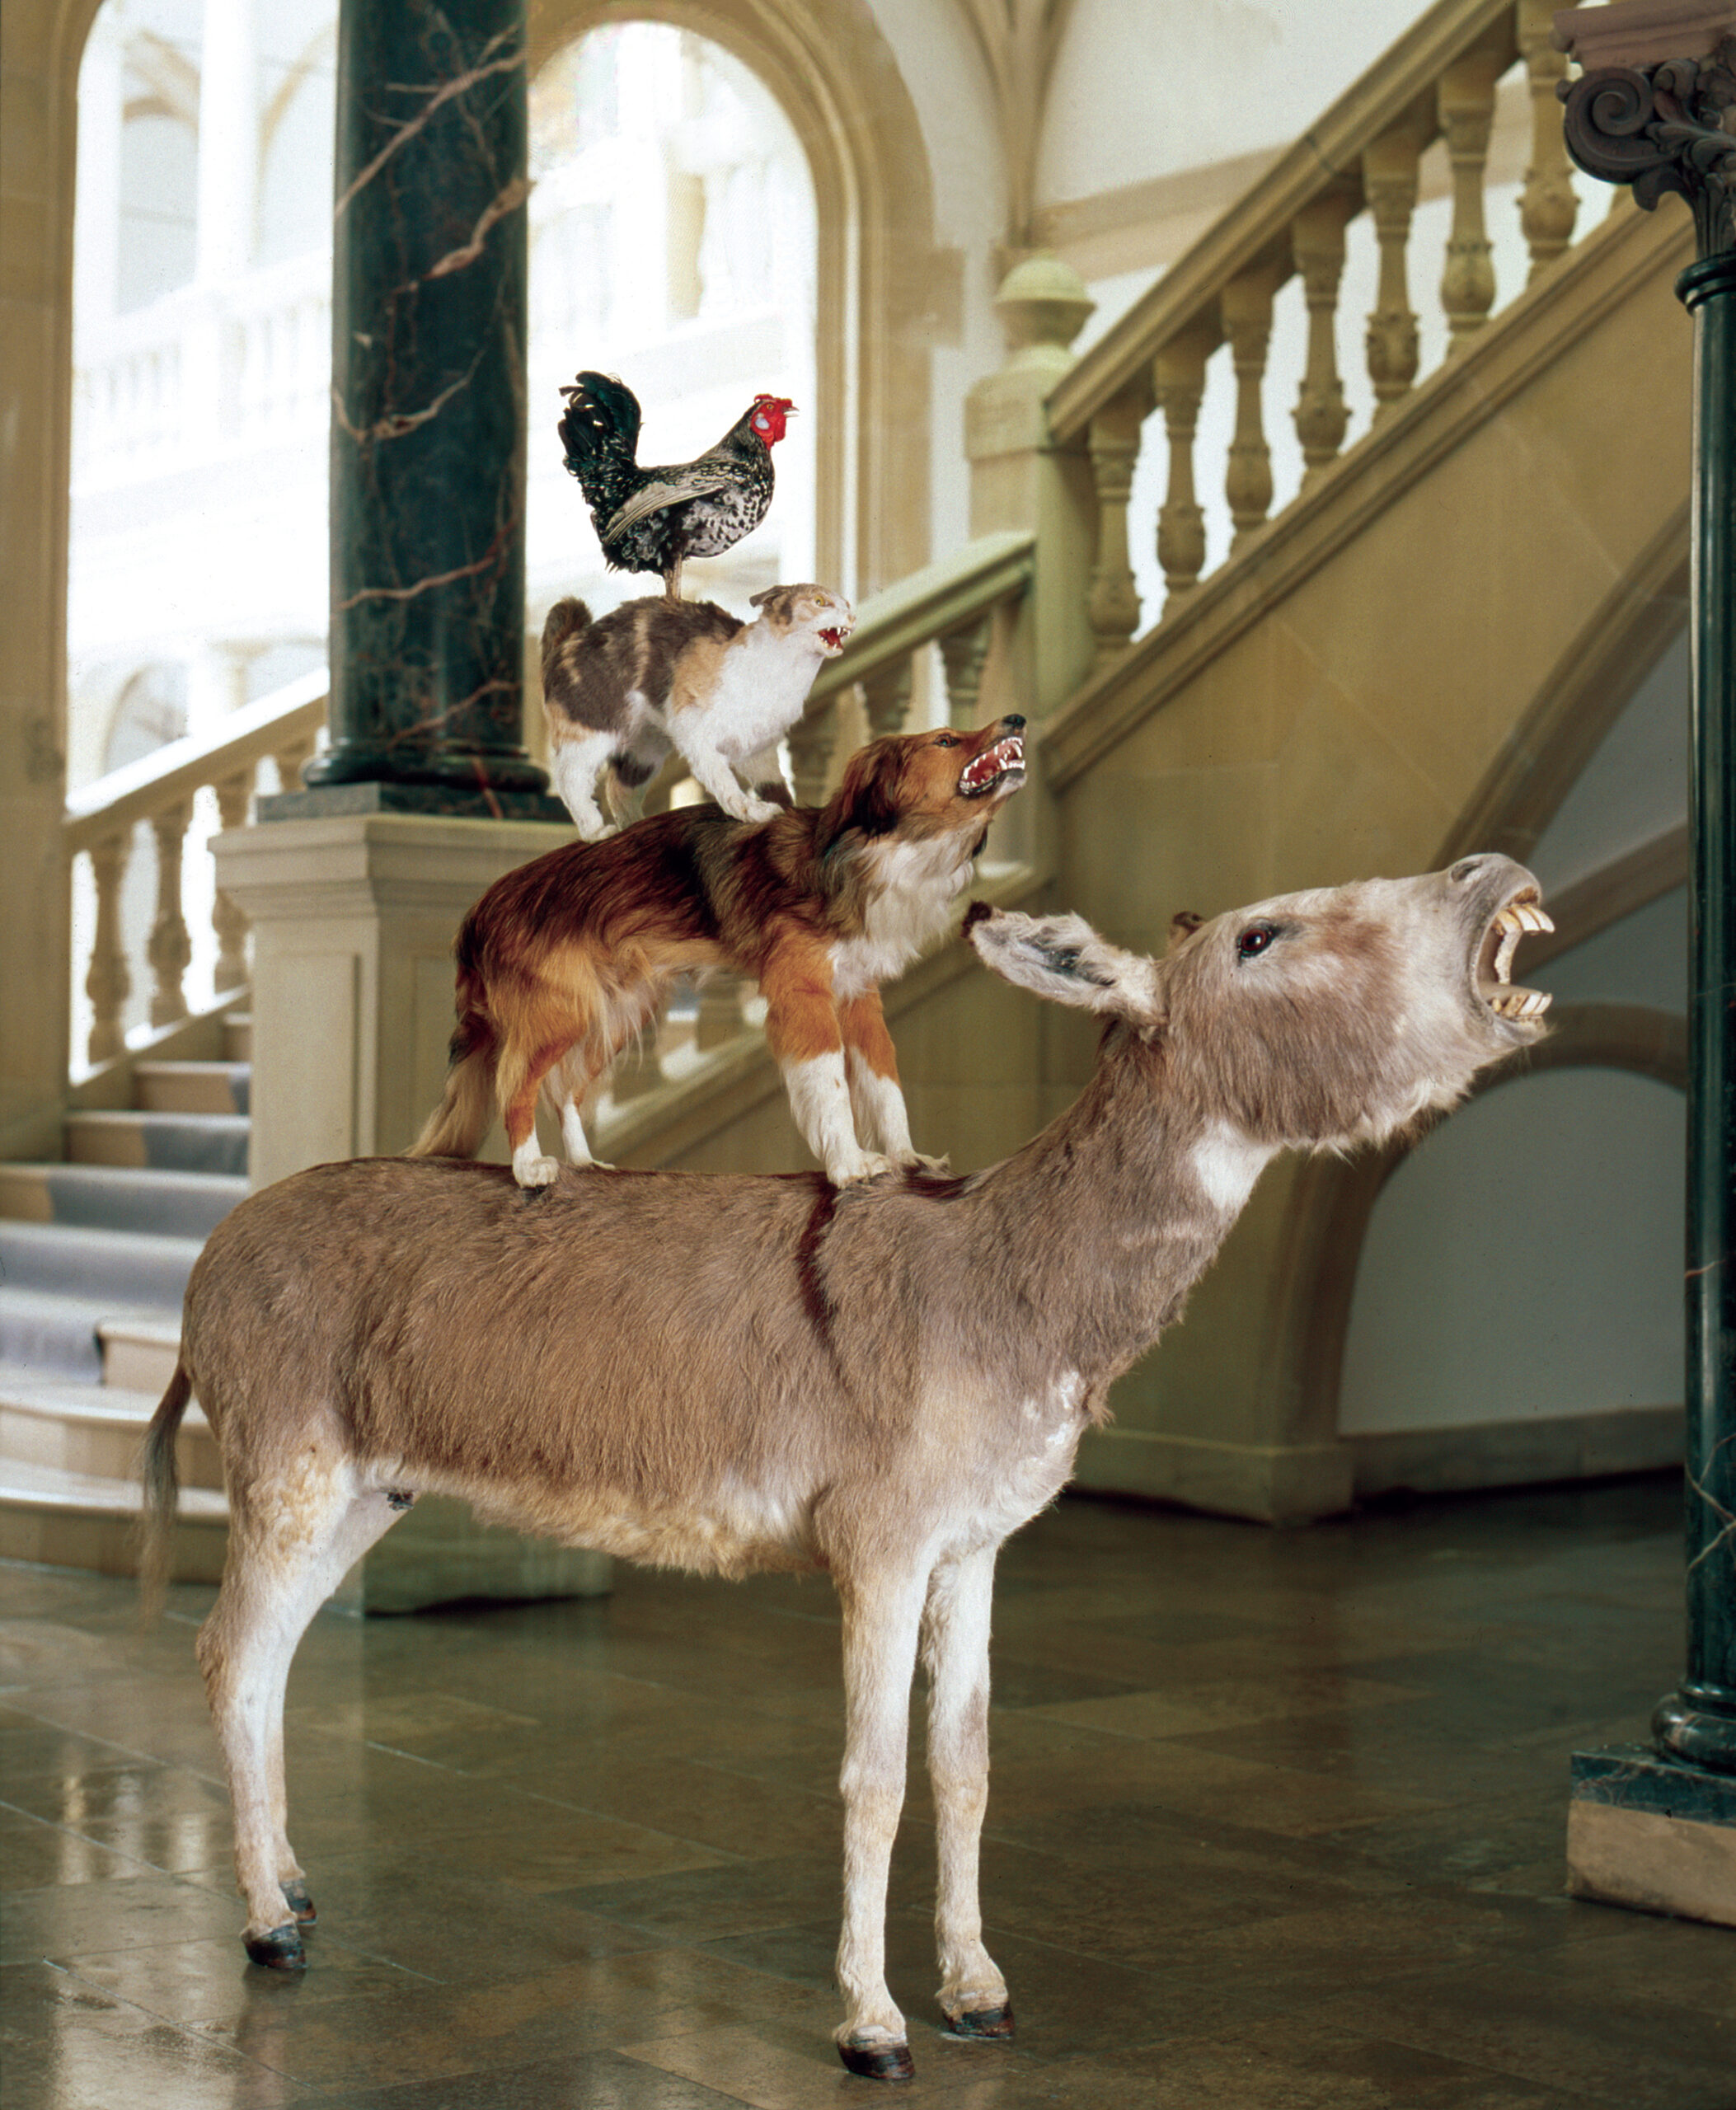 Maurizio Cattelan, Love Saves Life, 1995, Taxidermied donkey, dog, cat, rooster, 190 x 120 x 60 cm  Installation view, Skulptur Projekte, Westfälisches Landesmuseum, Münster, 1997, Courtesy Maurizio Cattelan's Archive, Photo Roman Mensing